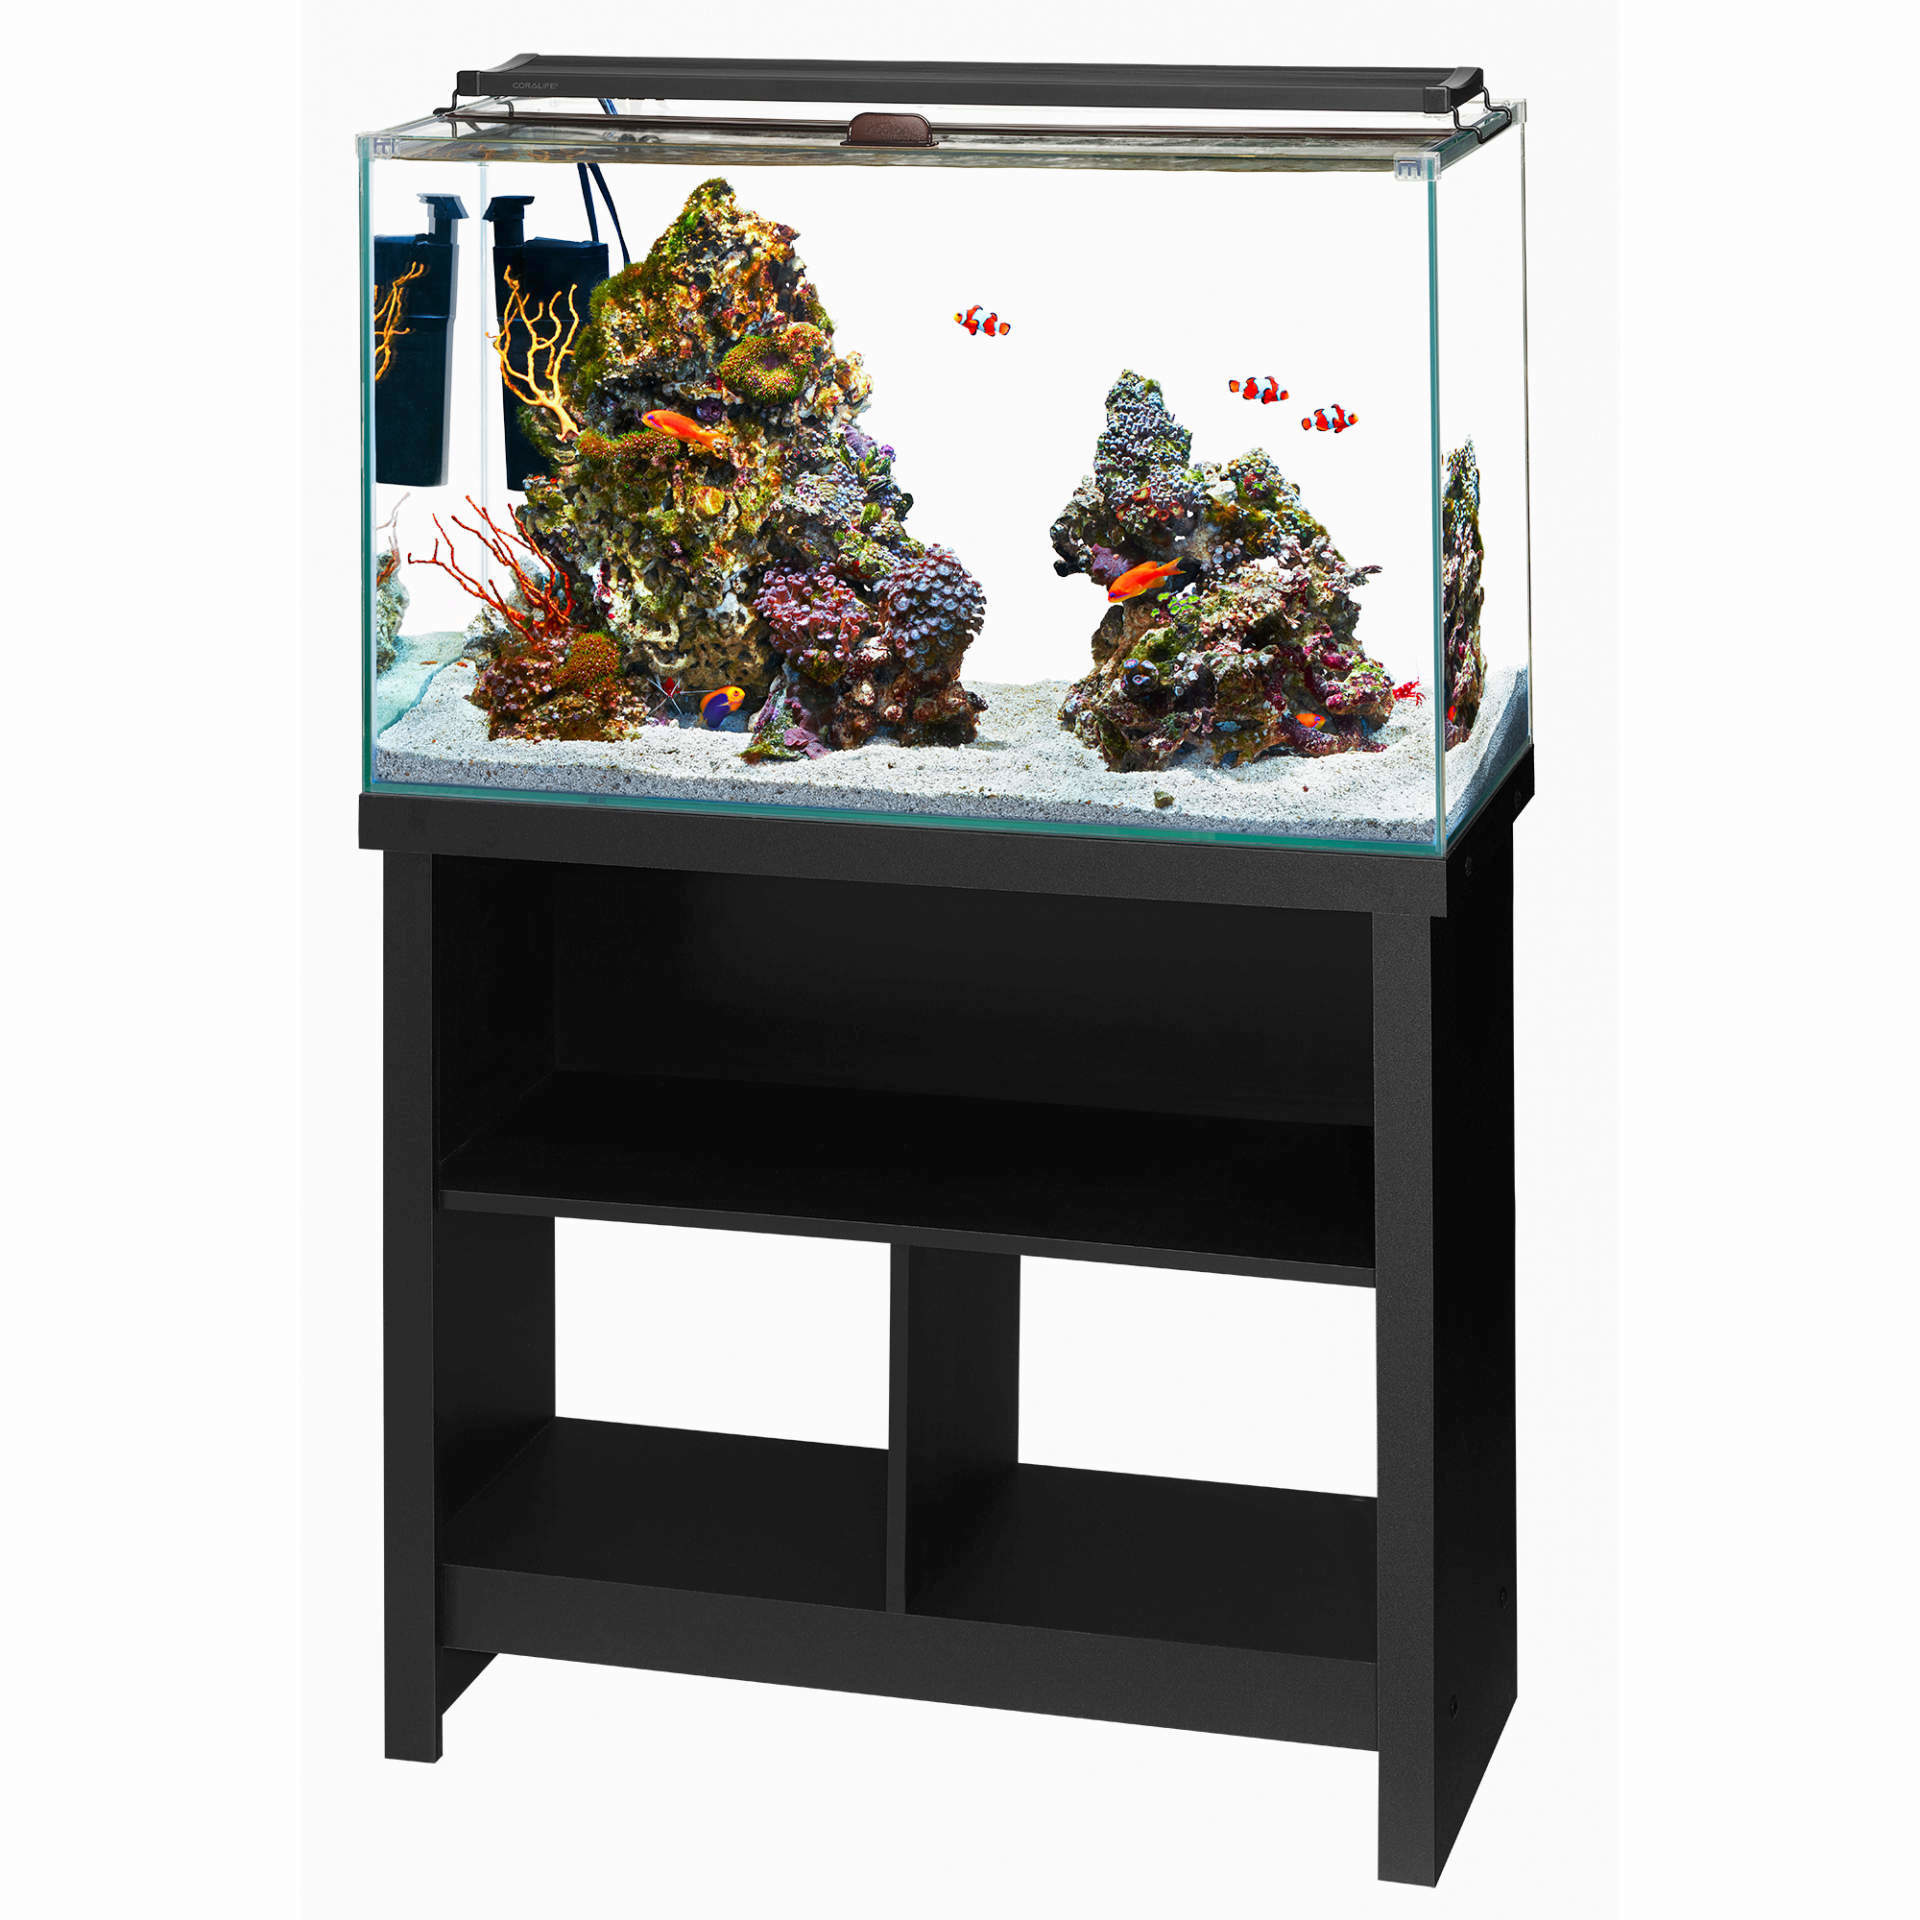 Aqueon Frameless 30 gallon Glass Aquarium